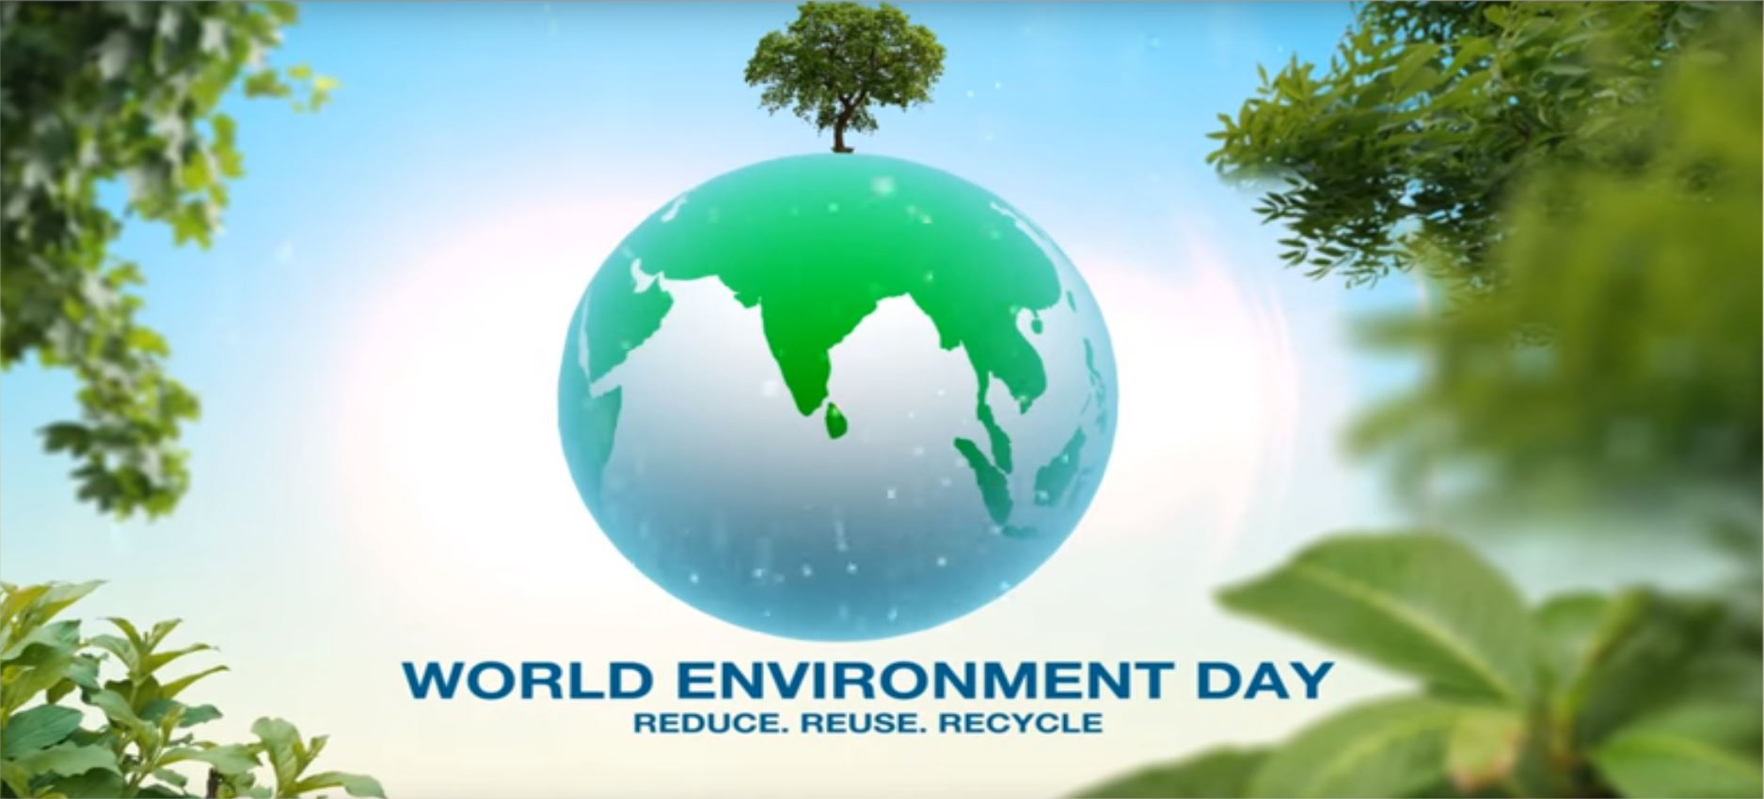 world environment day essay in english World environment day ('wed') is _1_ every year on june 5 to _2_ global awareness to take positive environmental action to protect _3_ and the planet earth it is run by the united nations environment programme (unep) world environment day began in 1972 as a day for people from all over the.